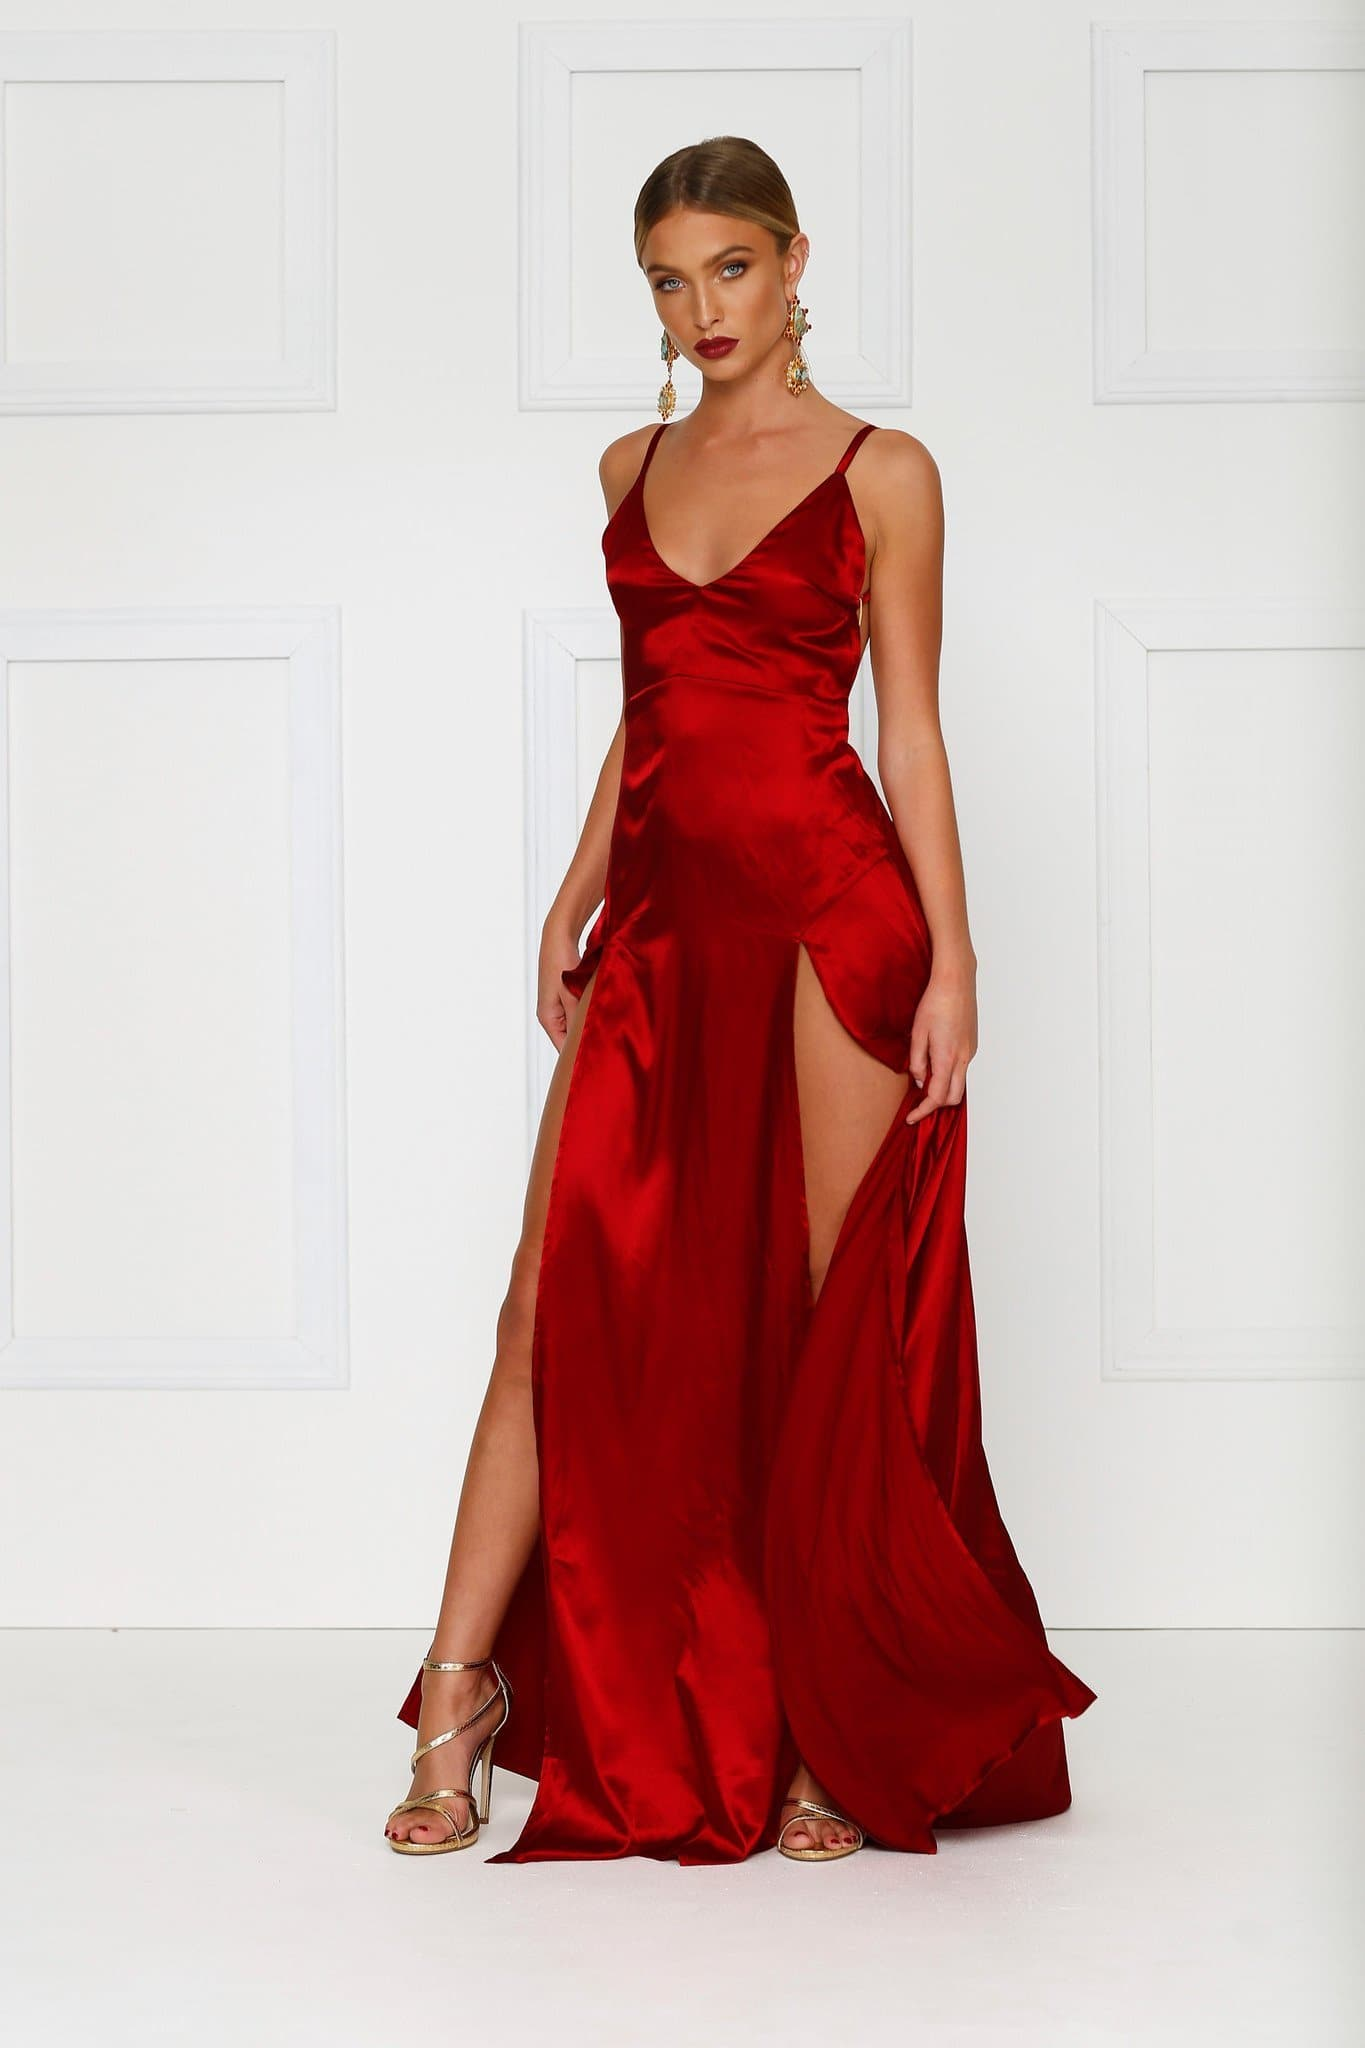 Alexis Wine Red V Neck Dress In Satin With High Splits